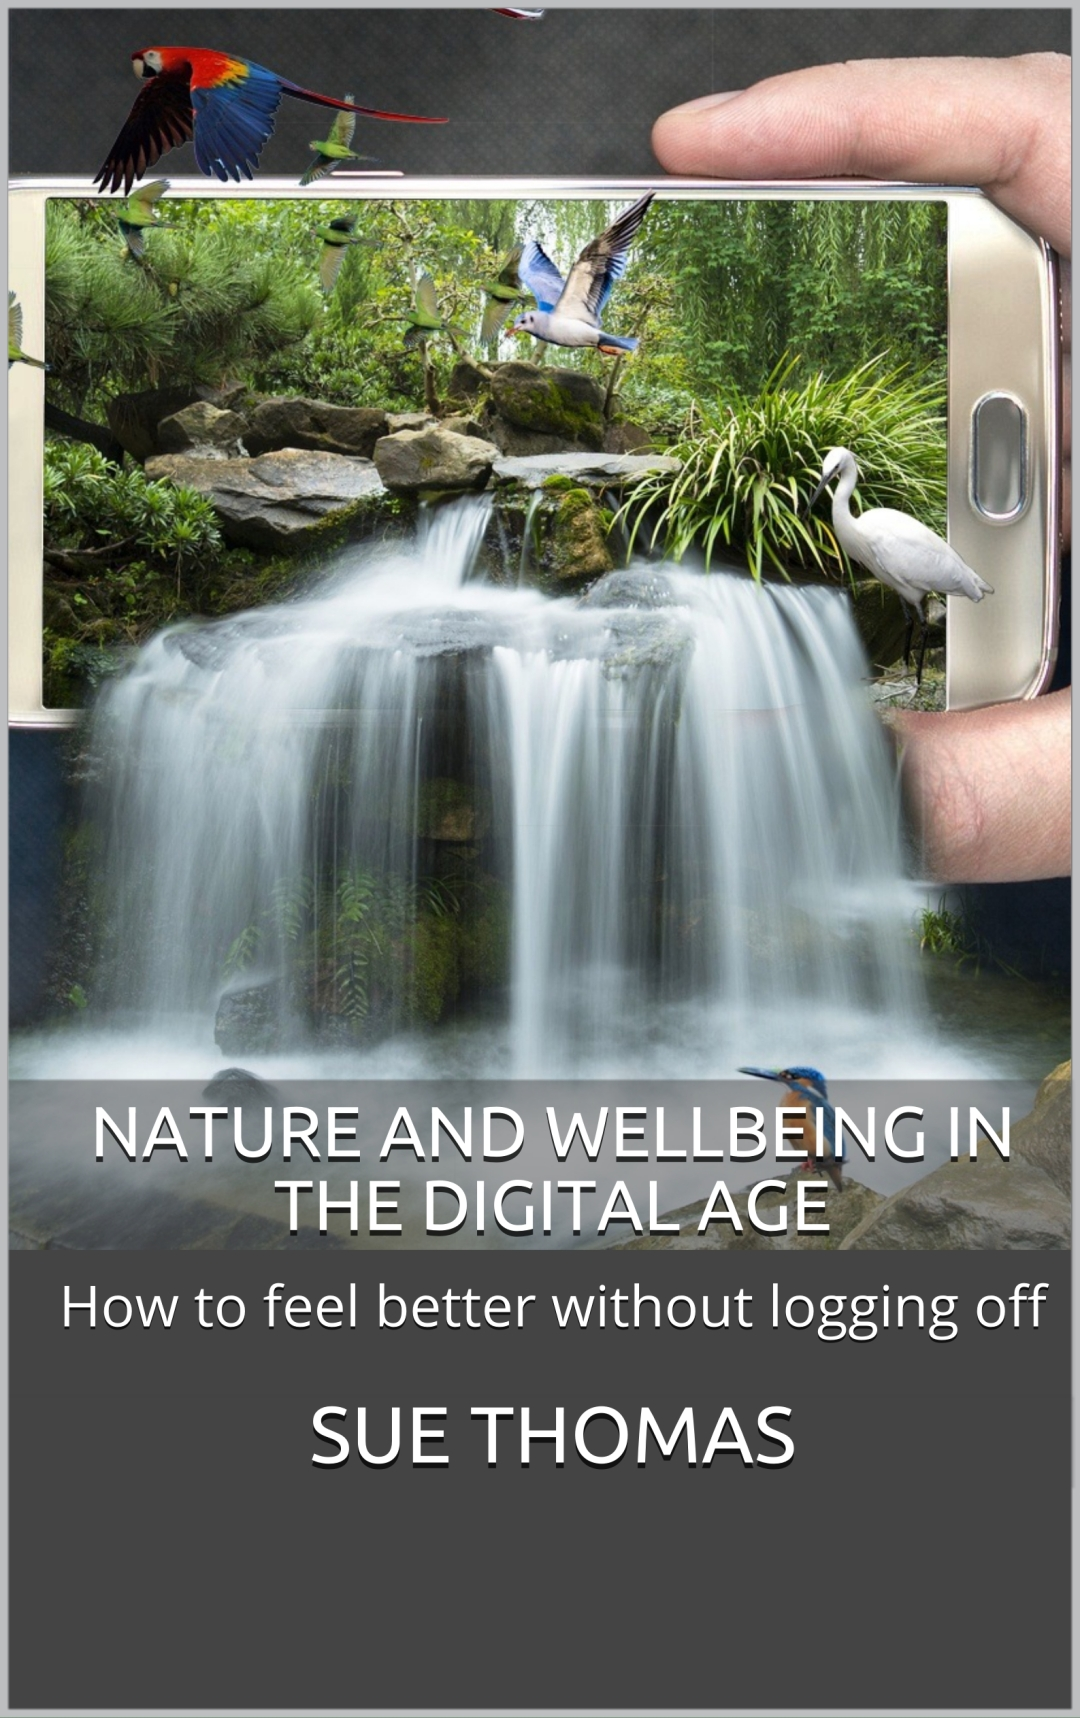 Nature and Wellbeing in the Digital Age (Kindle)